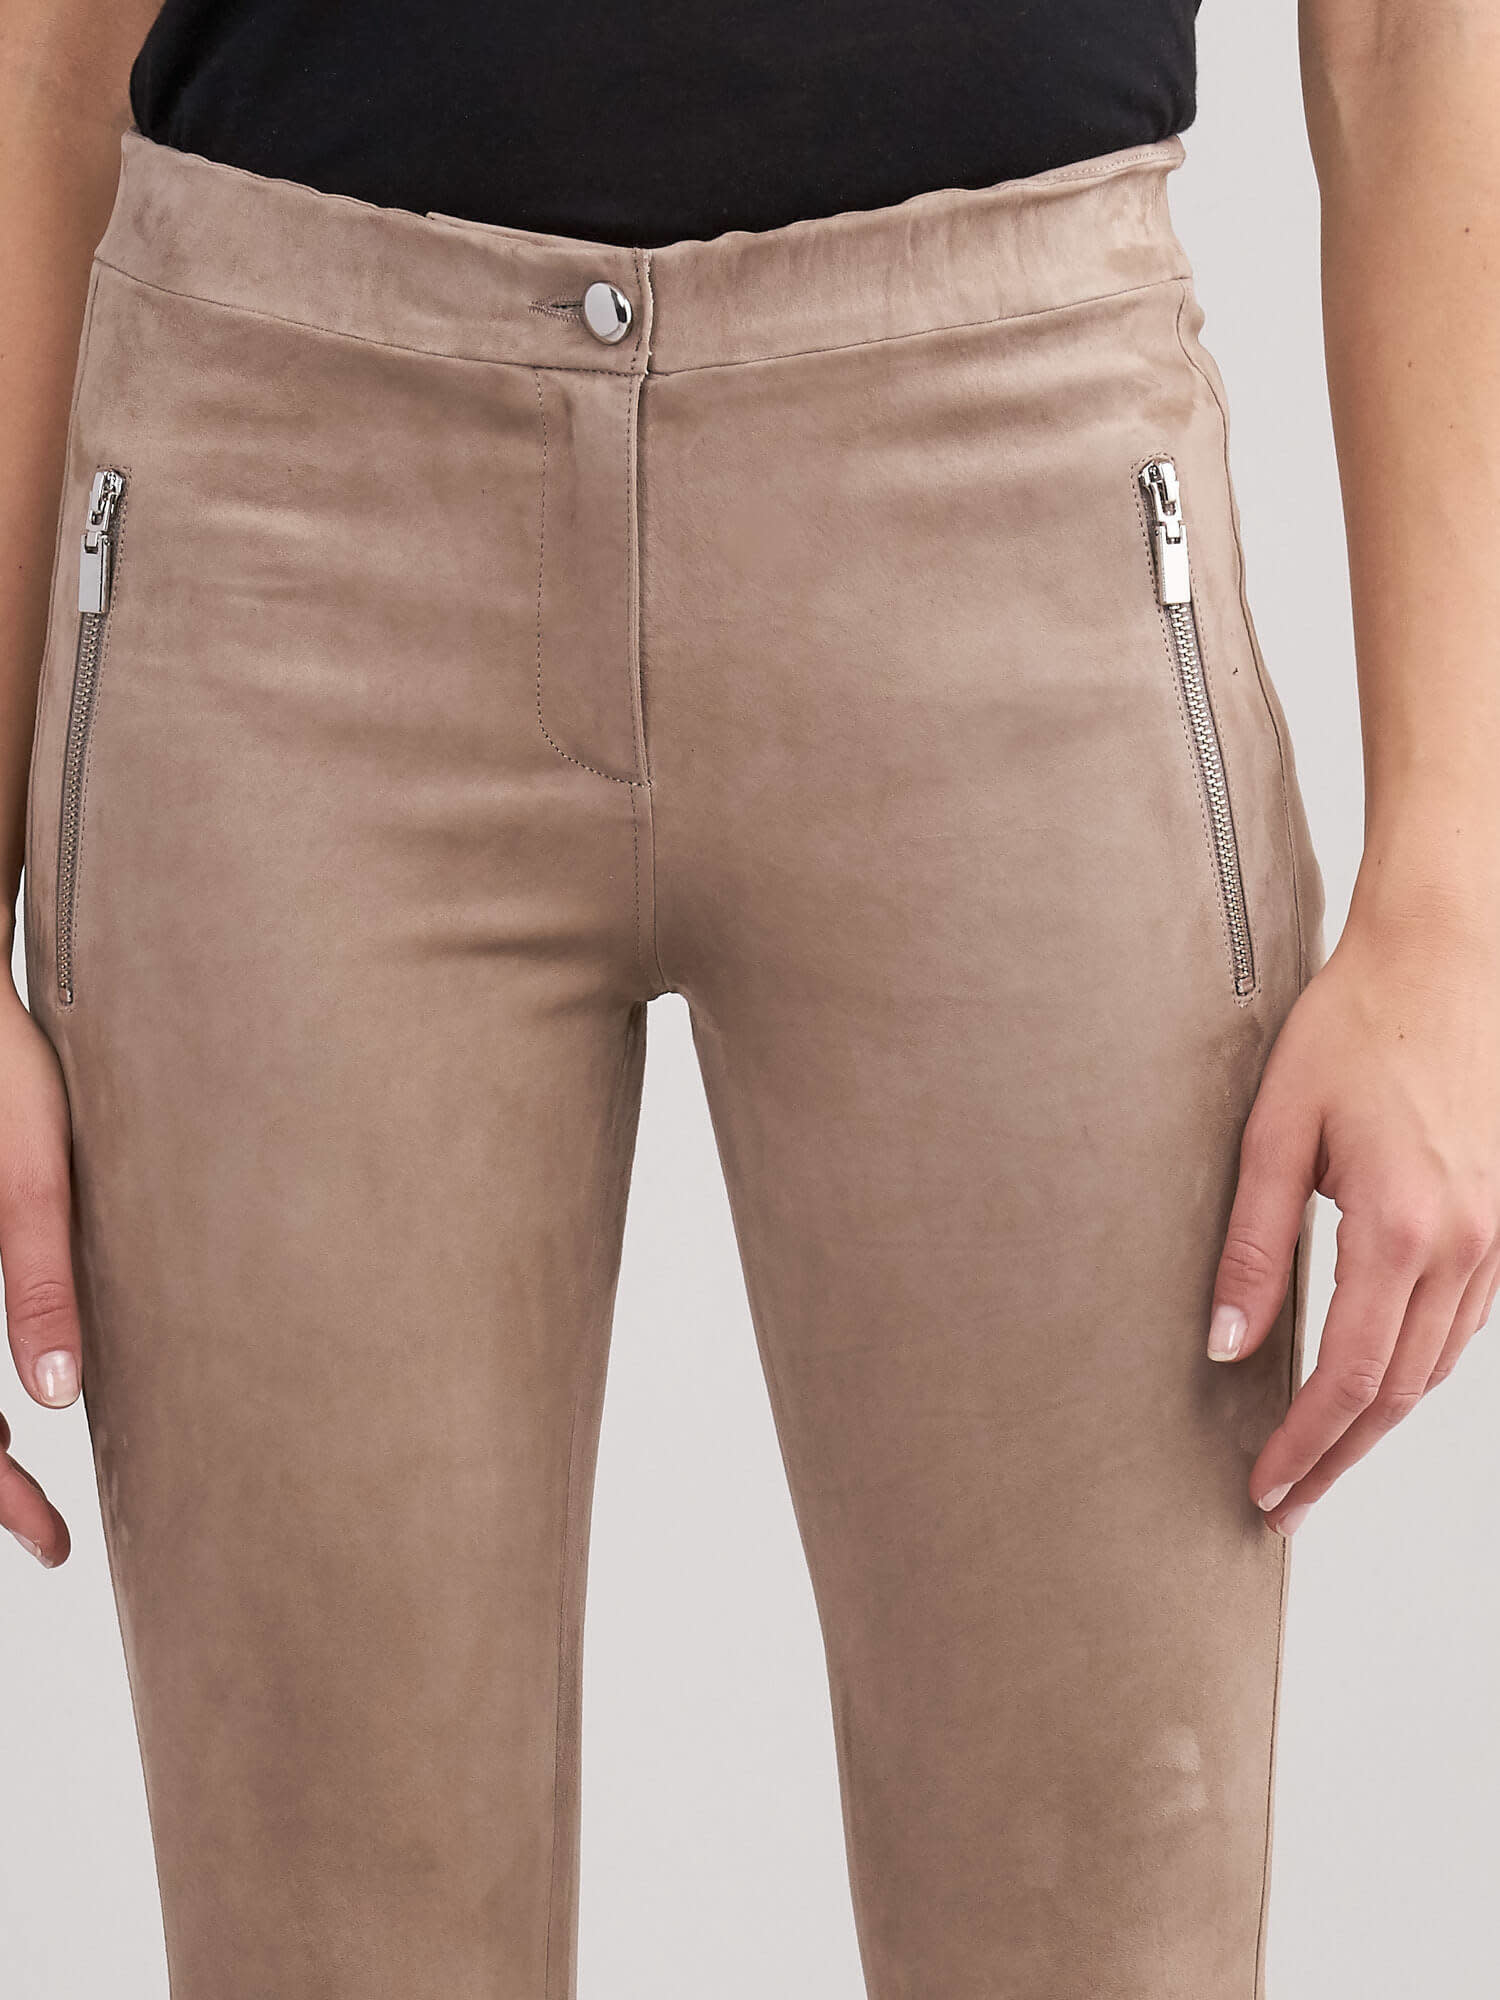 REPEAT leather pants taupe No56 Your Number REPEAT Ulvenhout